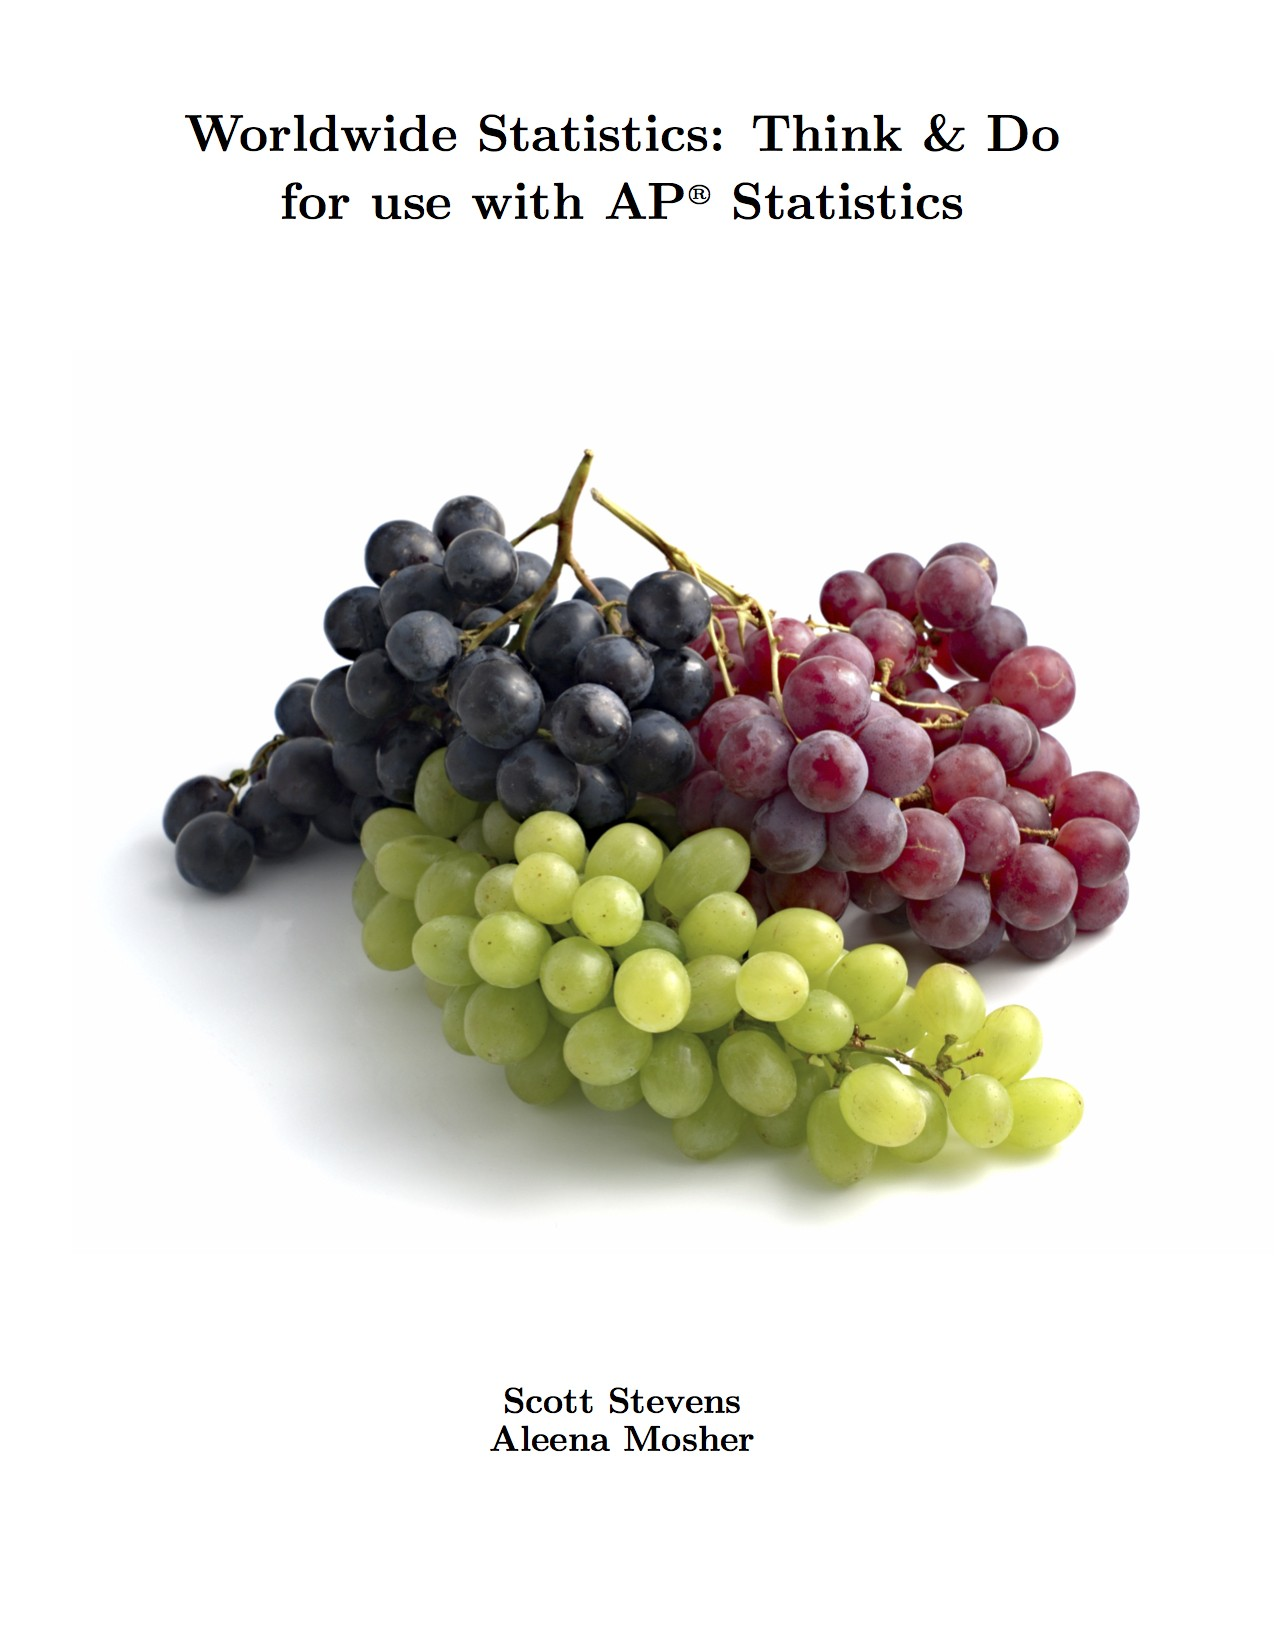 Worldwide Statistics: Think & Do for use with AP® Statistics